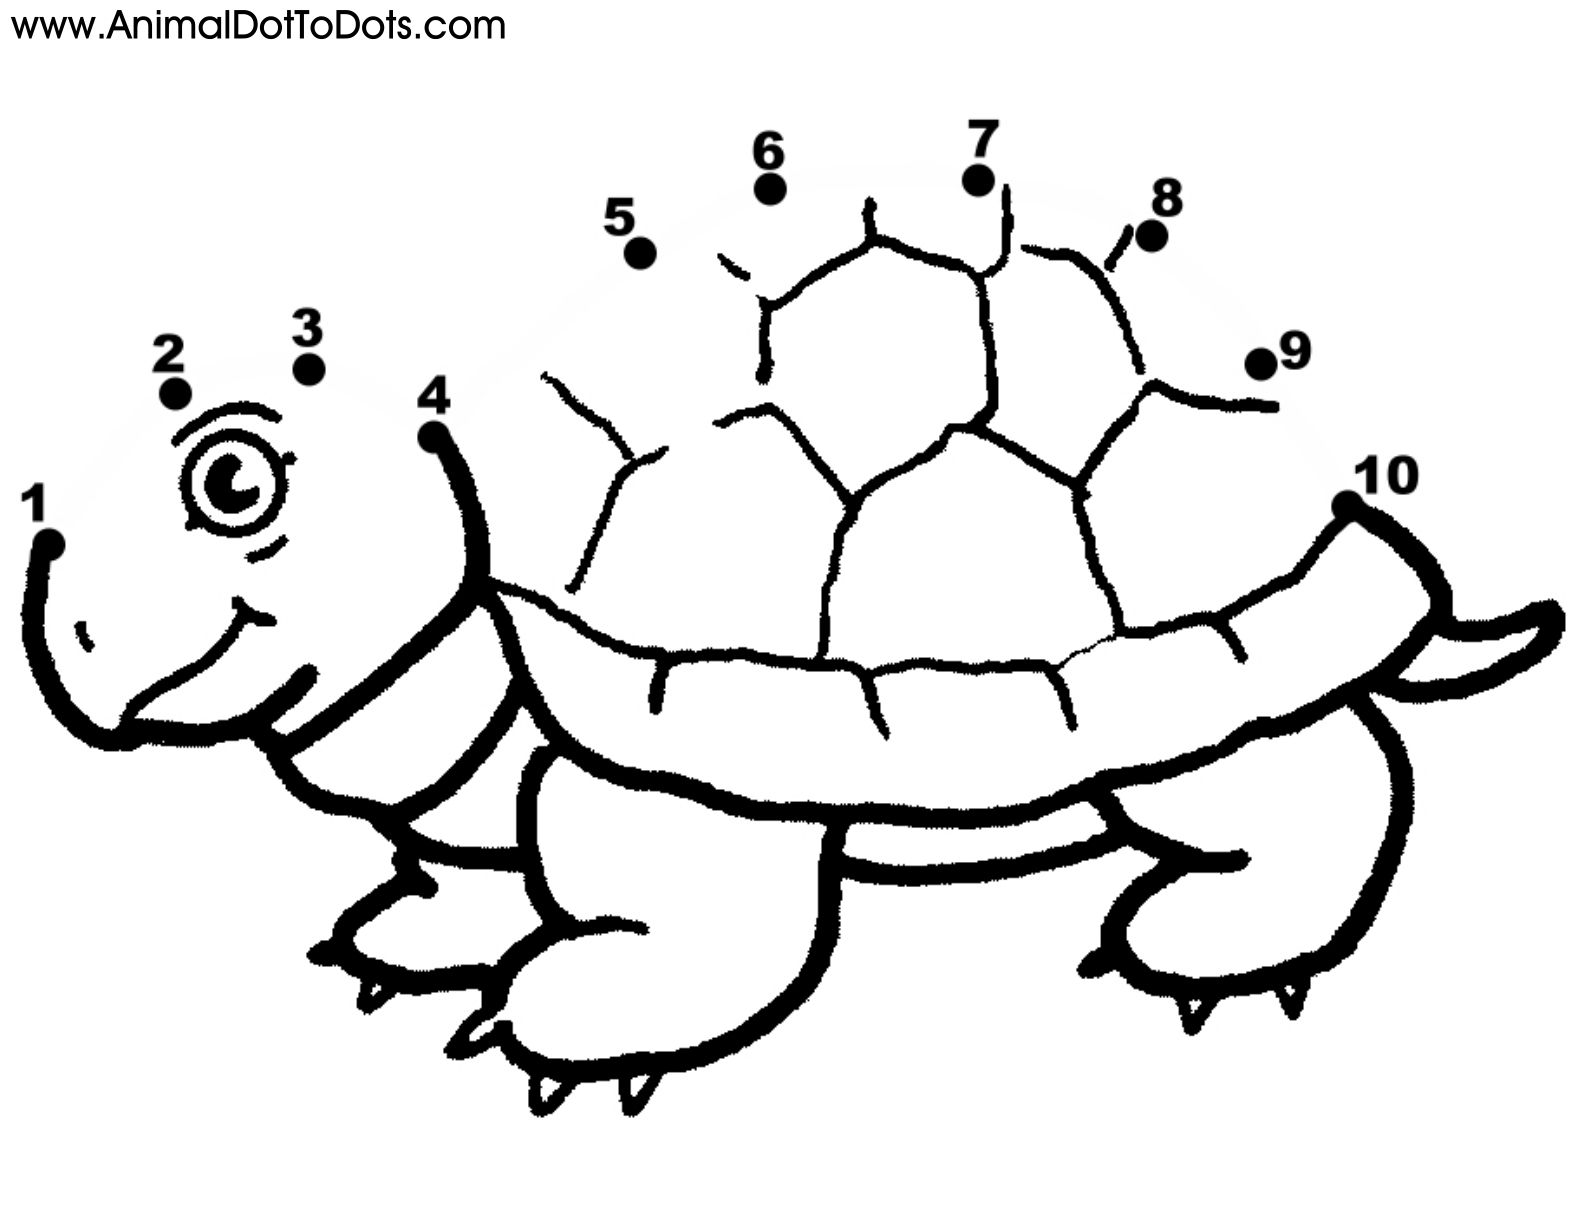 Free Printable Animal Dot To Dot Turtle